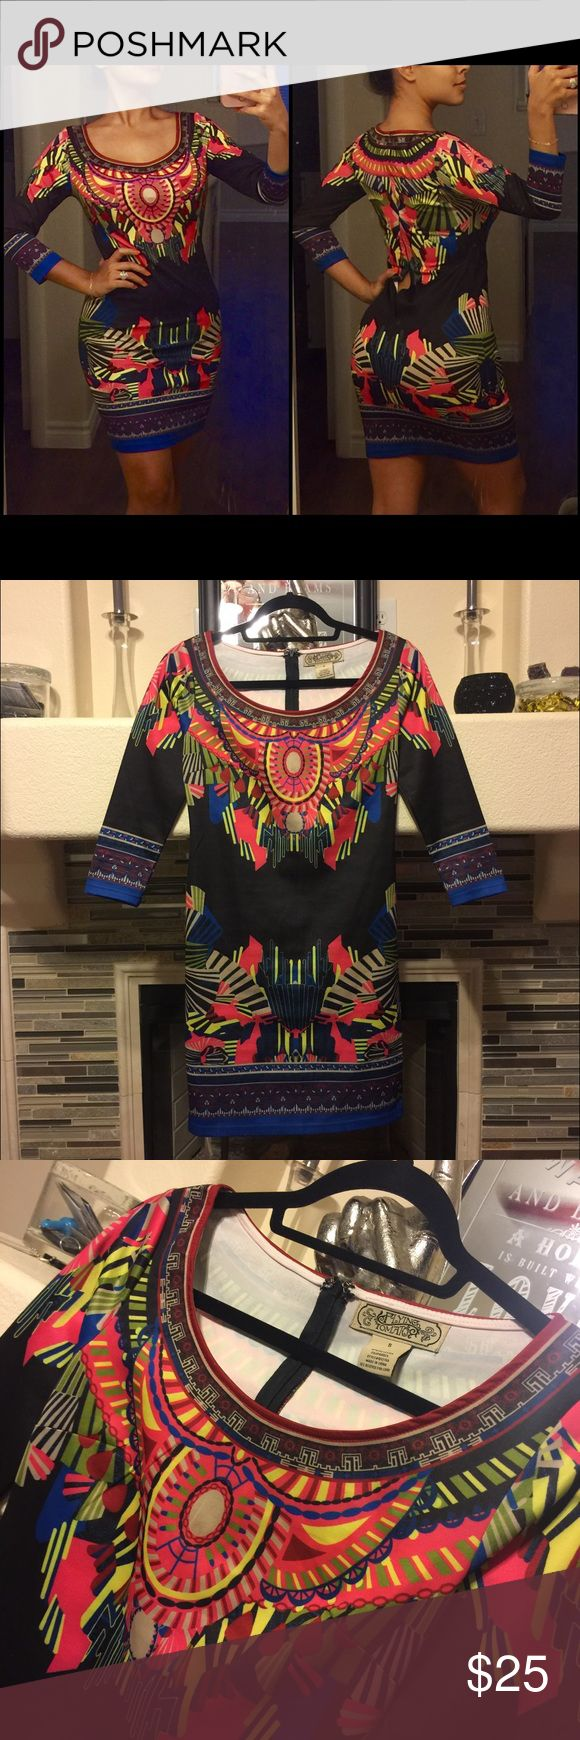 Aztec Print Bodycon Dress I'm in love with this 😍 colorful Aztec print dress.. bodycon fit, thick material. Worn once and in fabulous condition except for the zipper.. it unraveled (not ripped) so it's super easy to fix (i just can't sew, so I'd rather sell as is) look at last picture. Dresses Mini